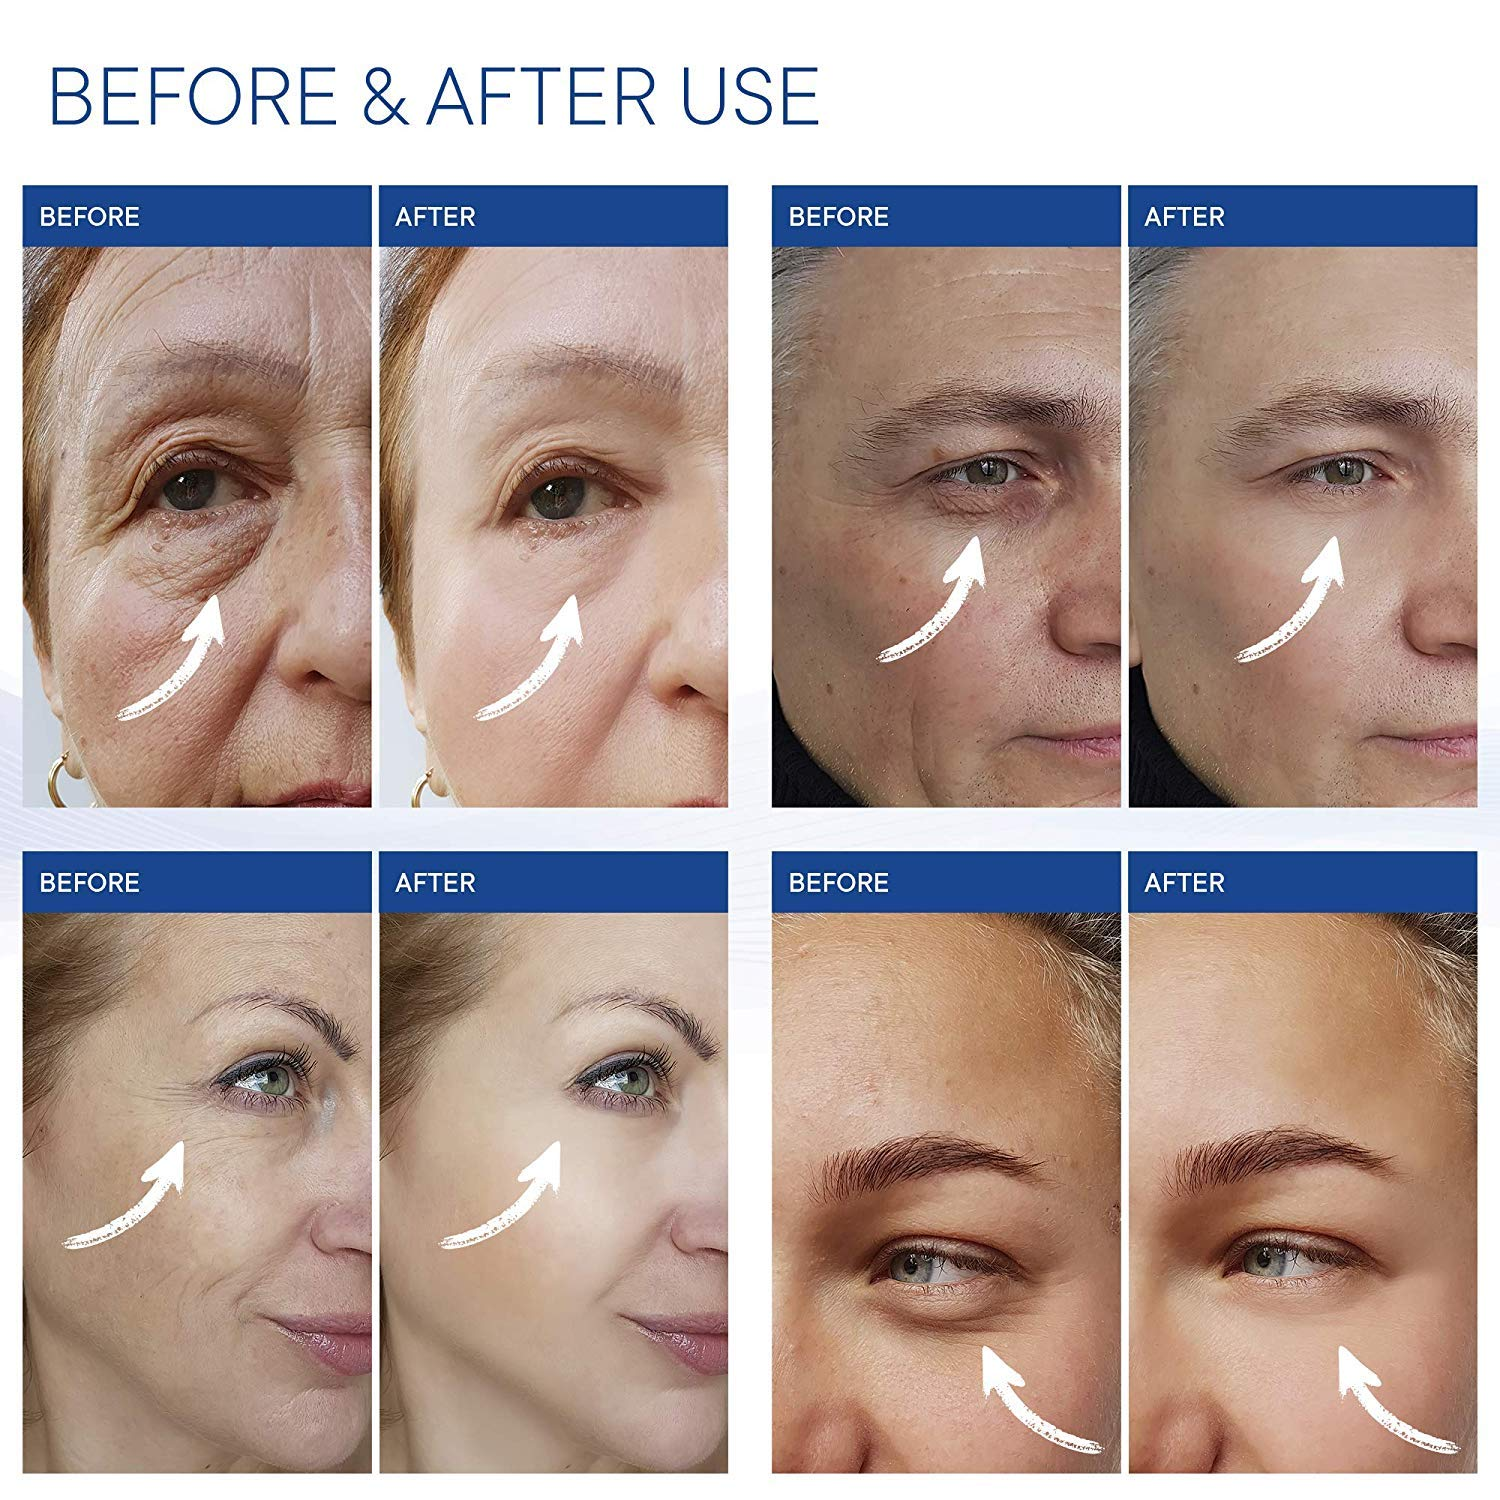 St Mege Rapid Reduction Eye Cream  UnderEye Bags Treatment  Instant Results within 120 Seconds